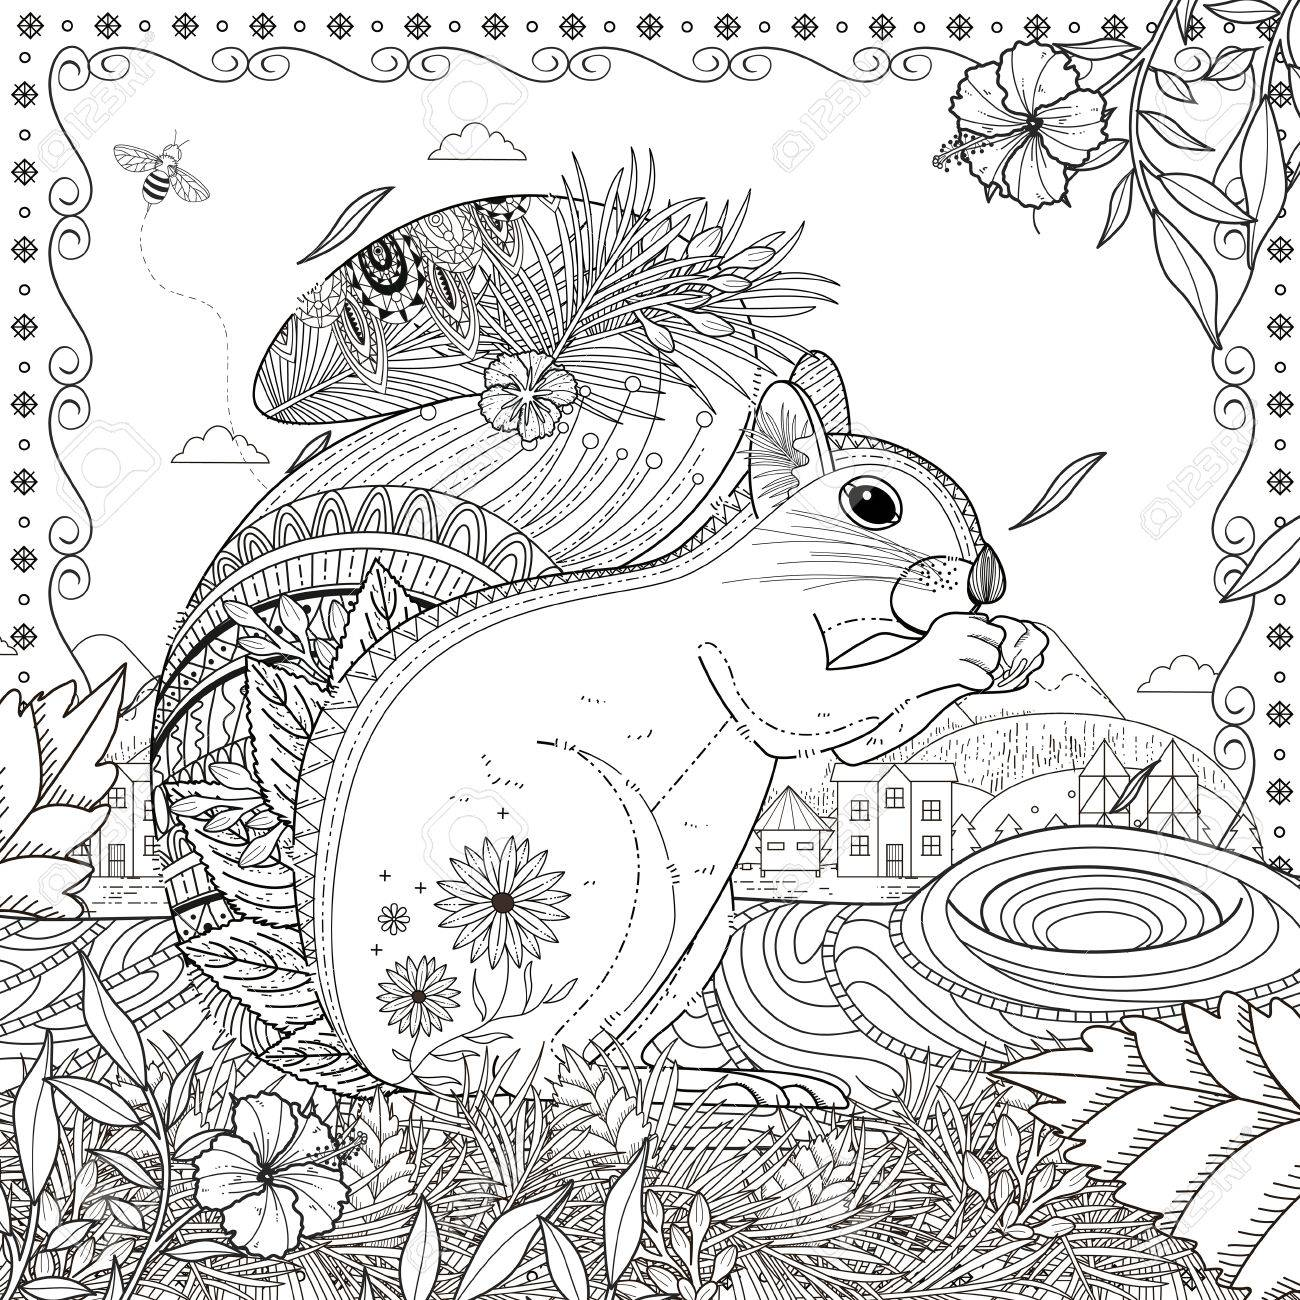 Adorable Squirrel Coloring Page In Exquisite Line Royalty Free ...